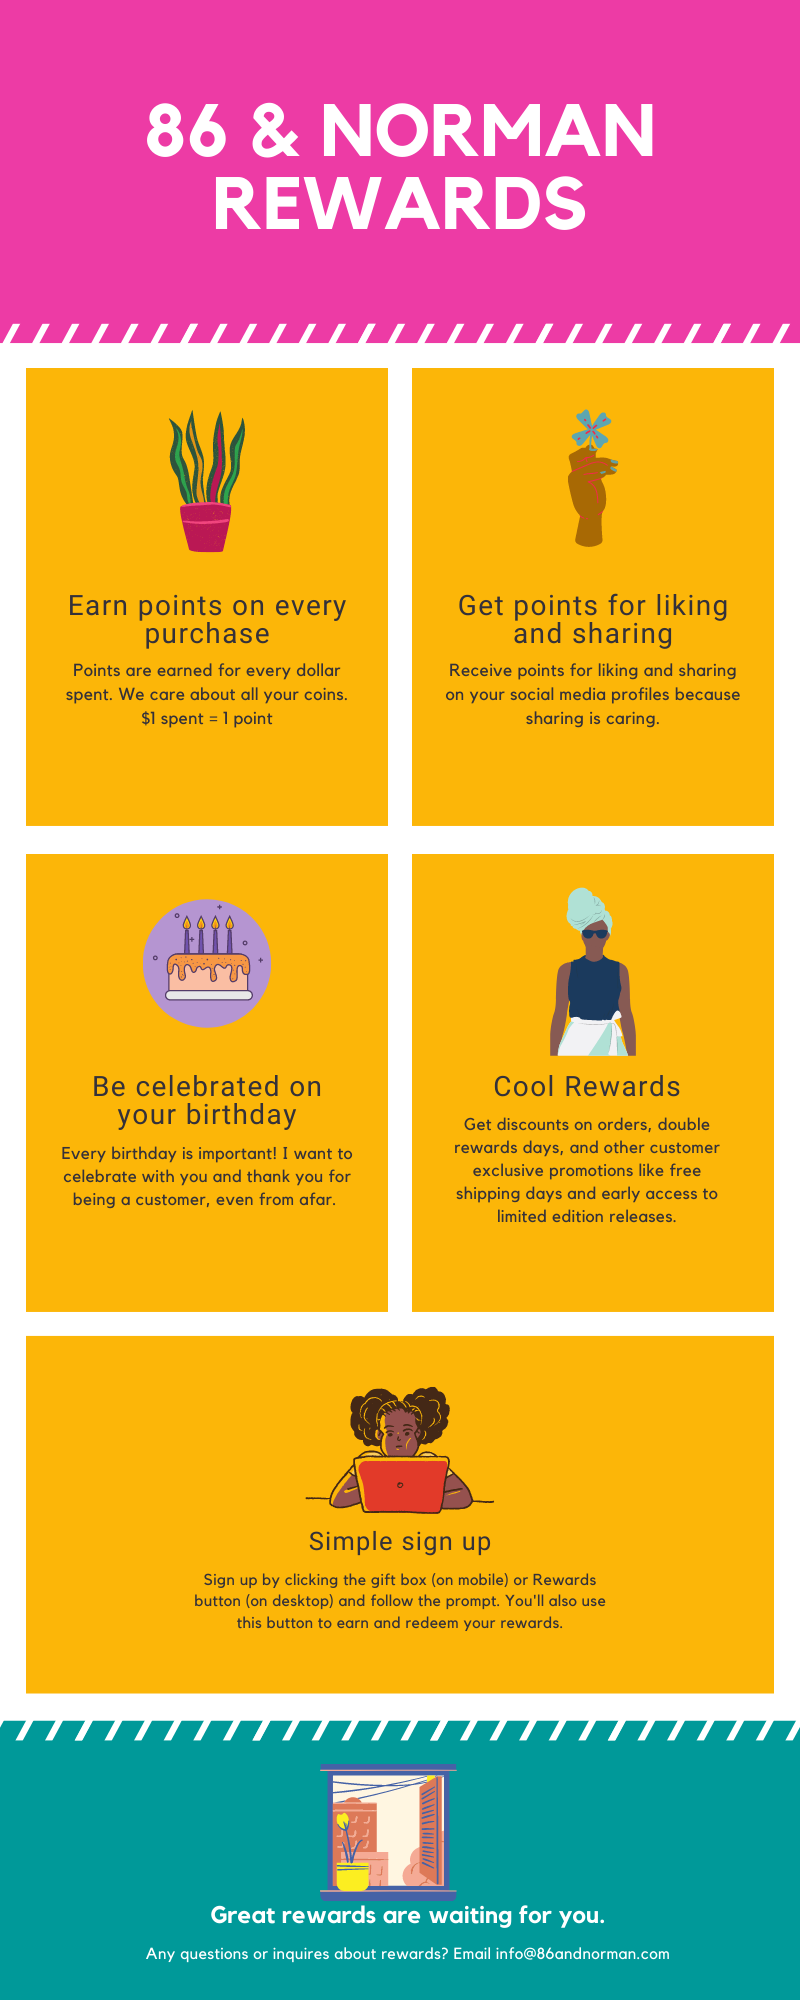 rewards-infographic-2021.png